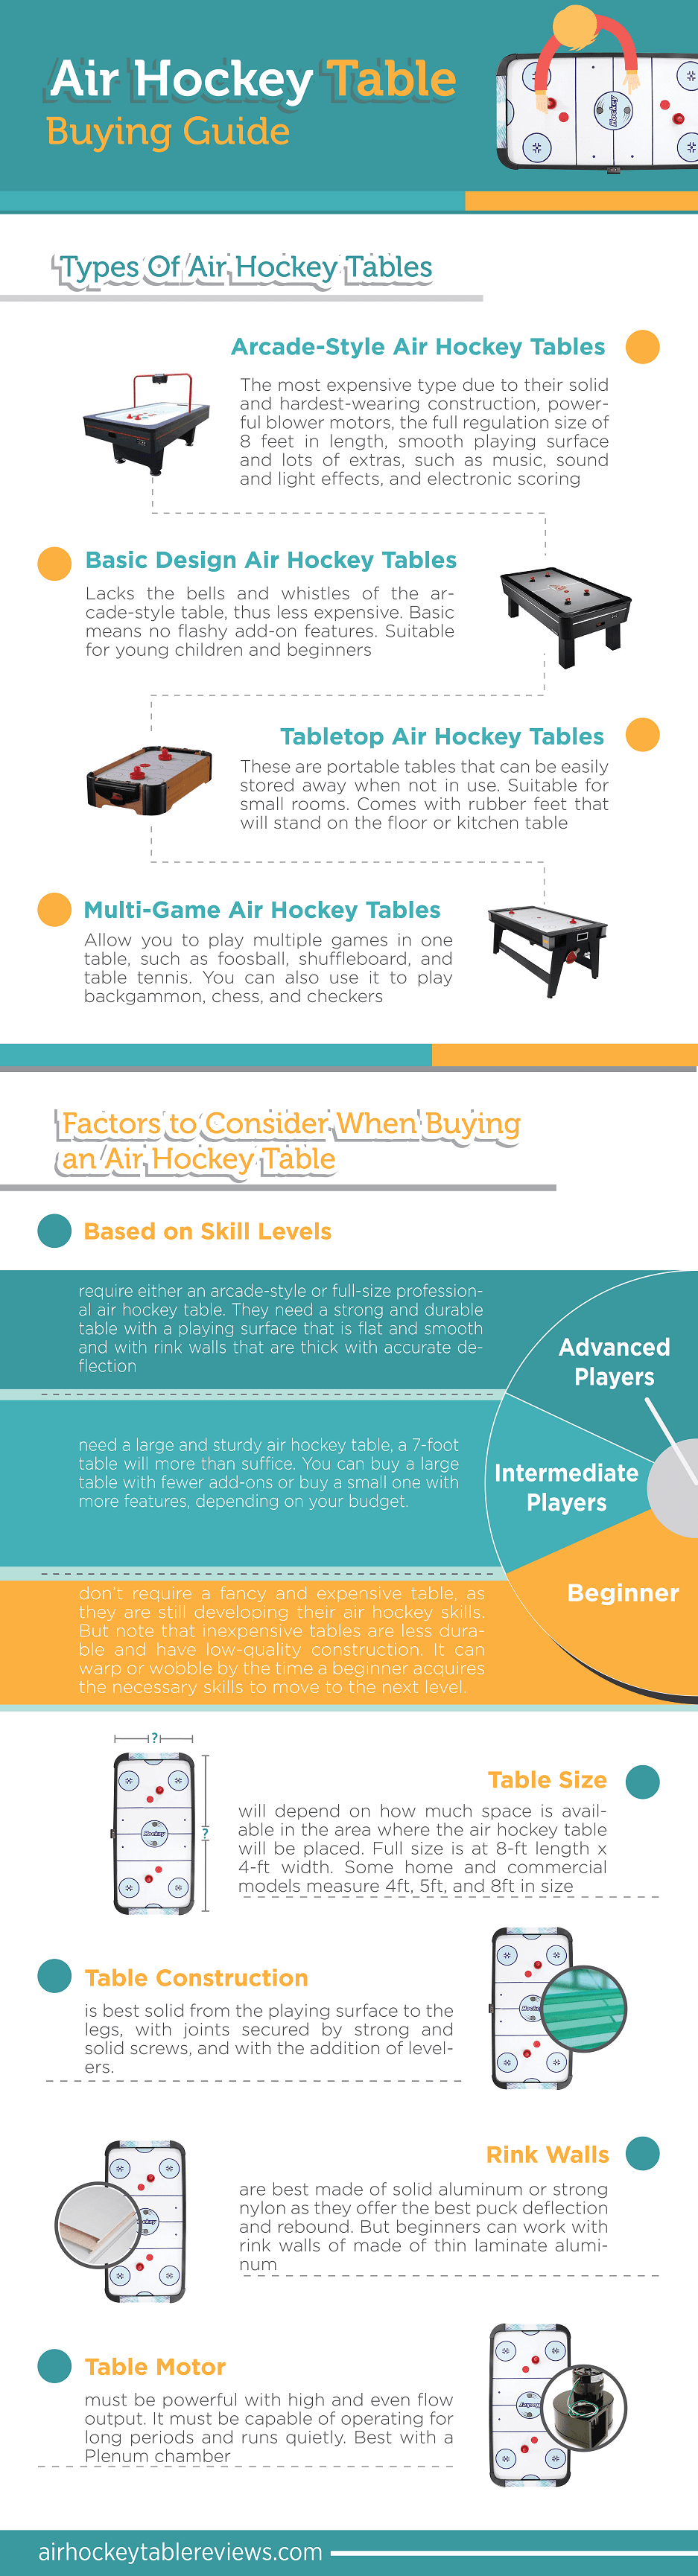 Air Hockey Buying Guide